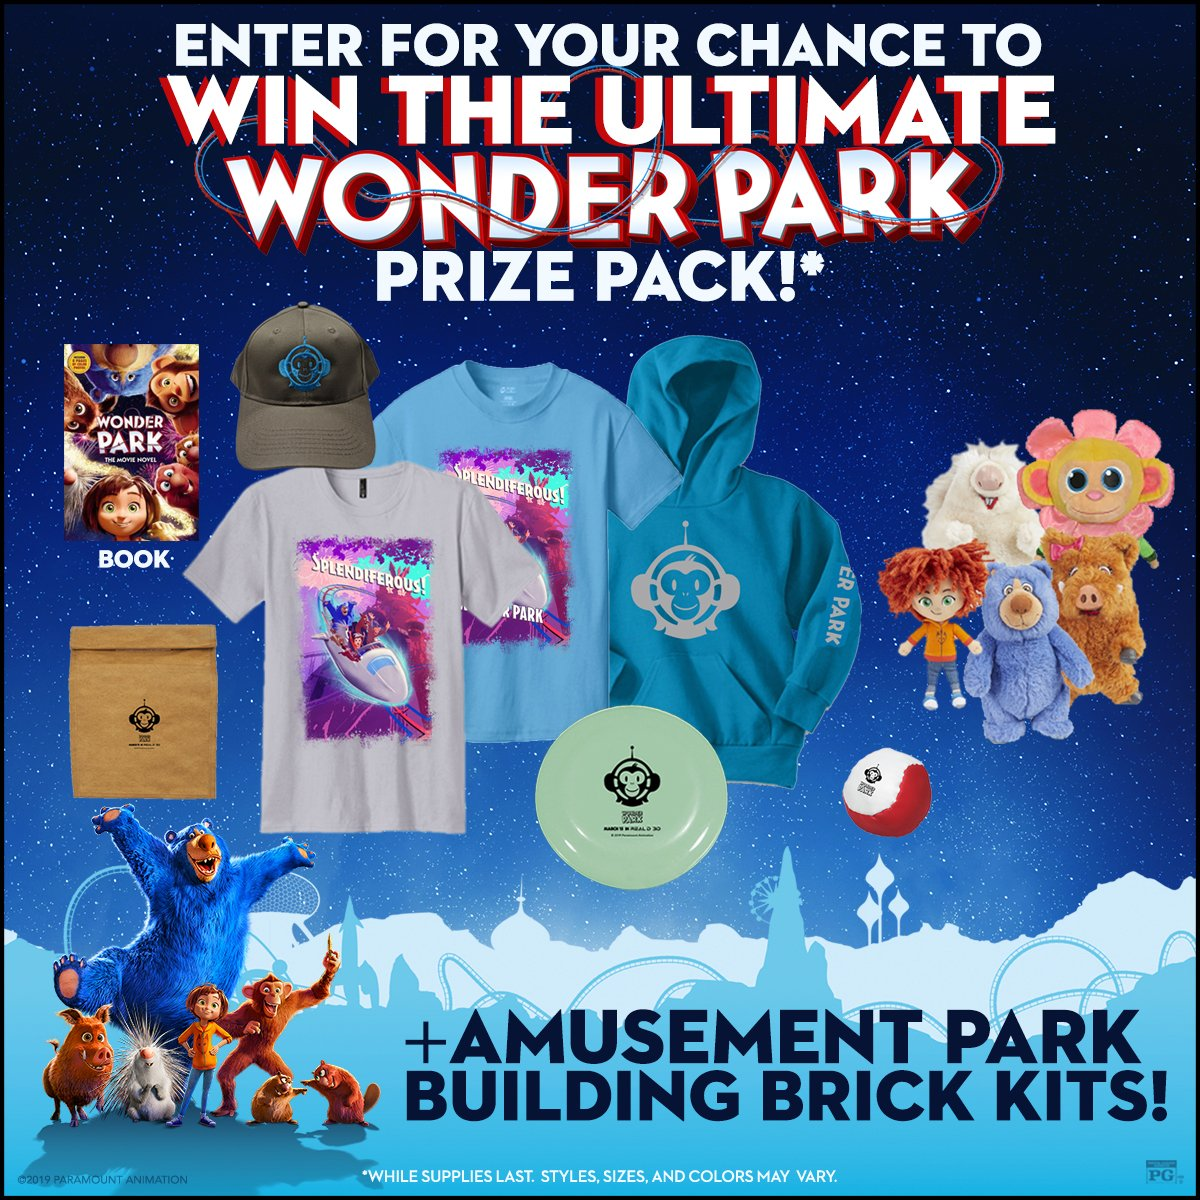 Enter to win our @WonderParkMovie prize pack! 🎢🎡 The lucky winner will be announced tomorrow. RT & follow now. 😃   See #WonderPark this weekend: http://amc.film/2HOmzp4